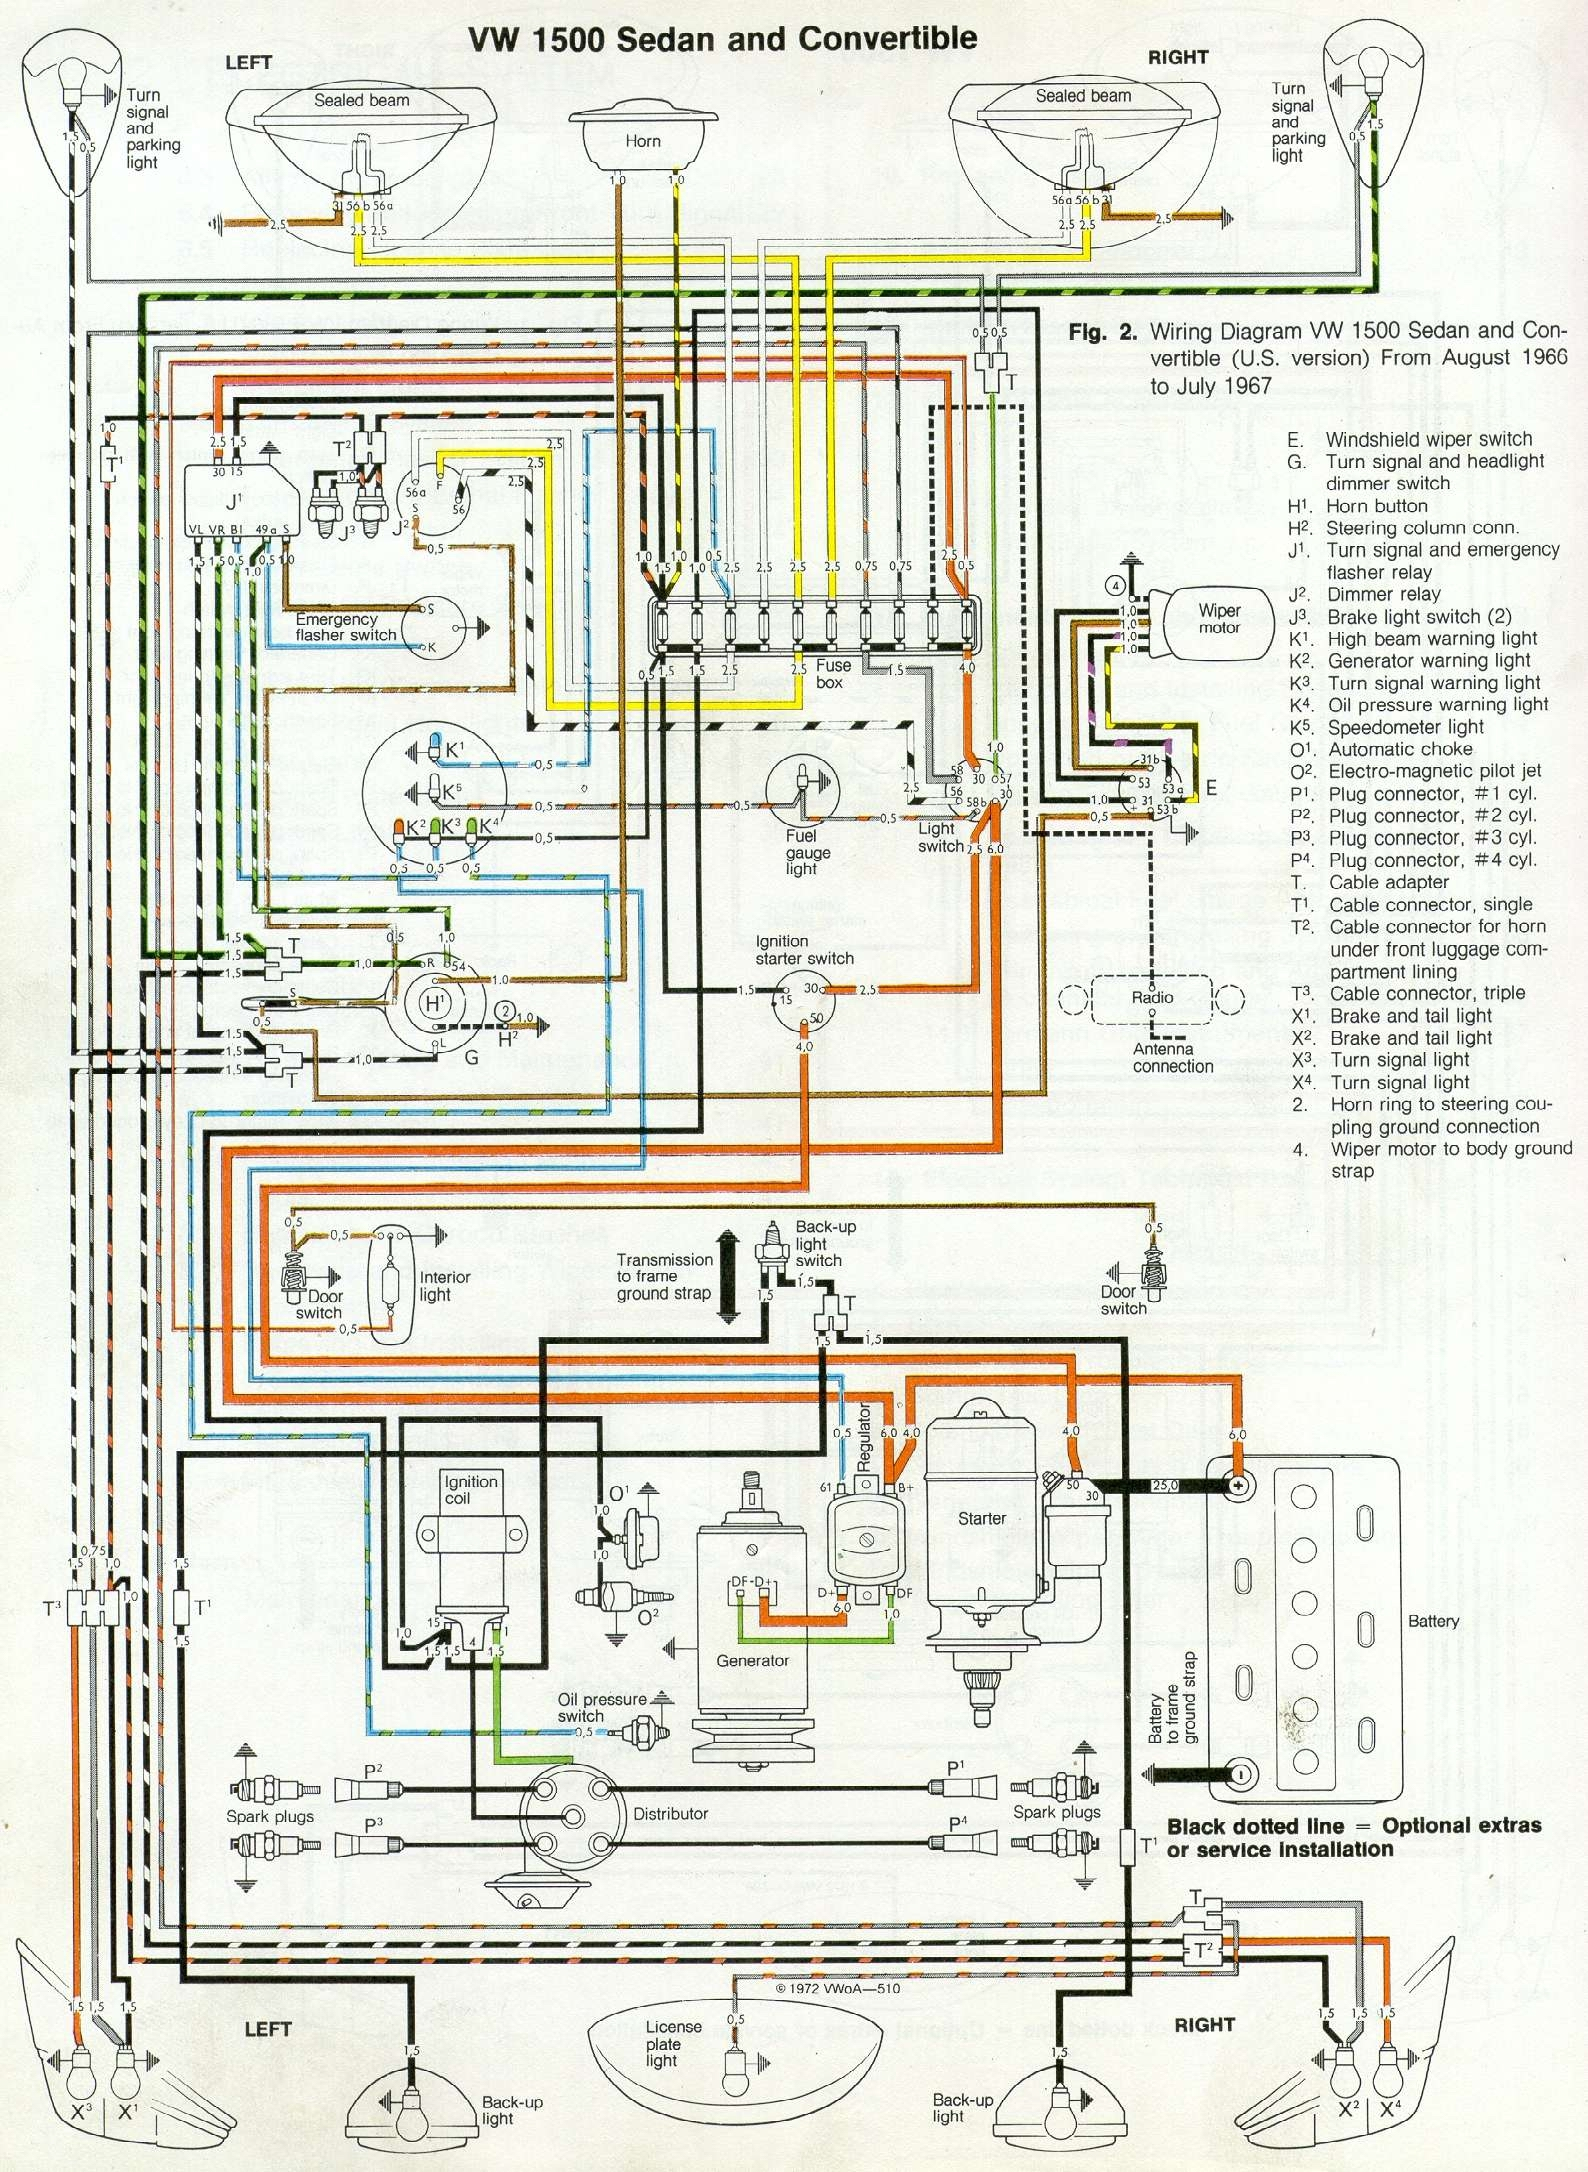 66 and 67 vw beetle wiring diagram 1967 vw beetle rh 1967beetle com VW  Beetle Fuse Box Diagram 1998 VW Beetle Fuse Box Diagram 2005